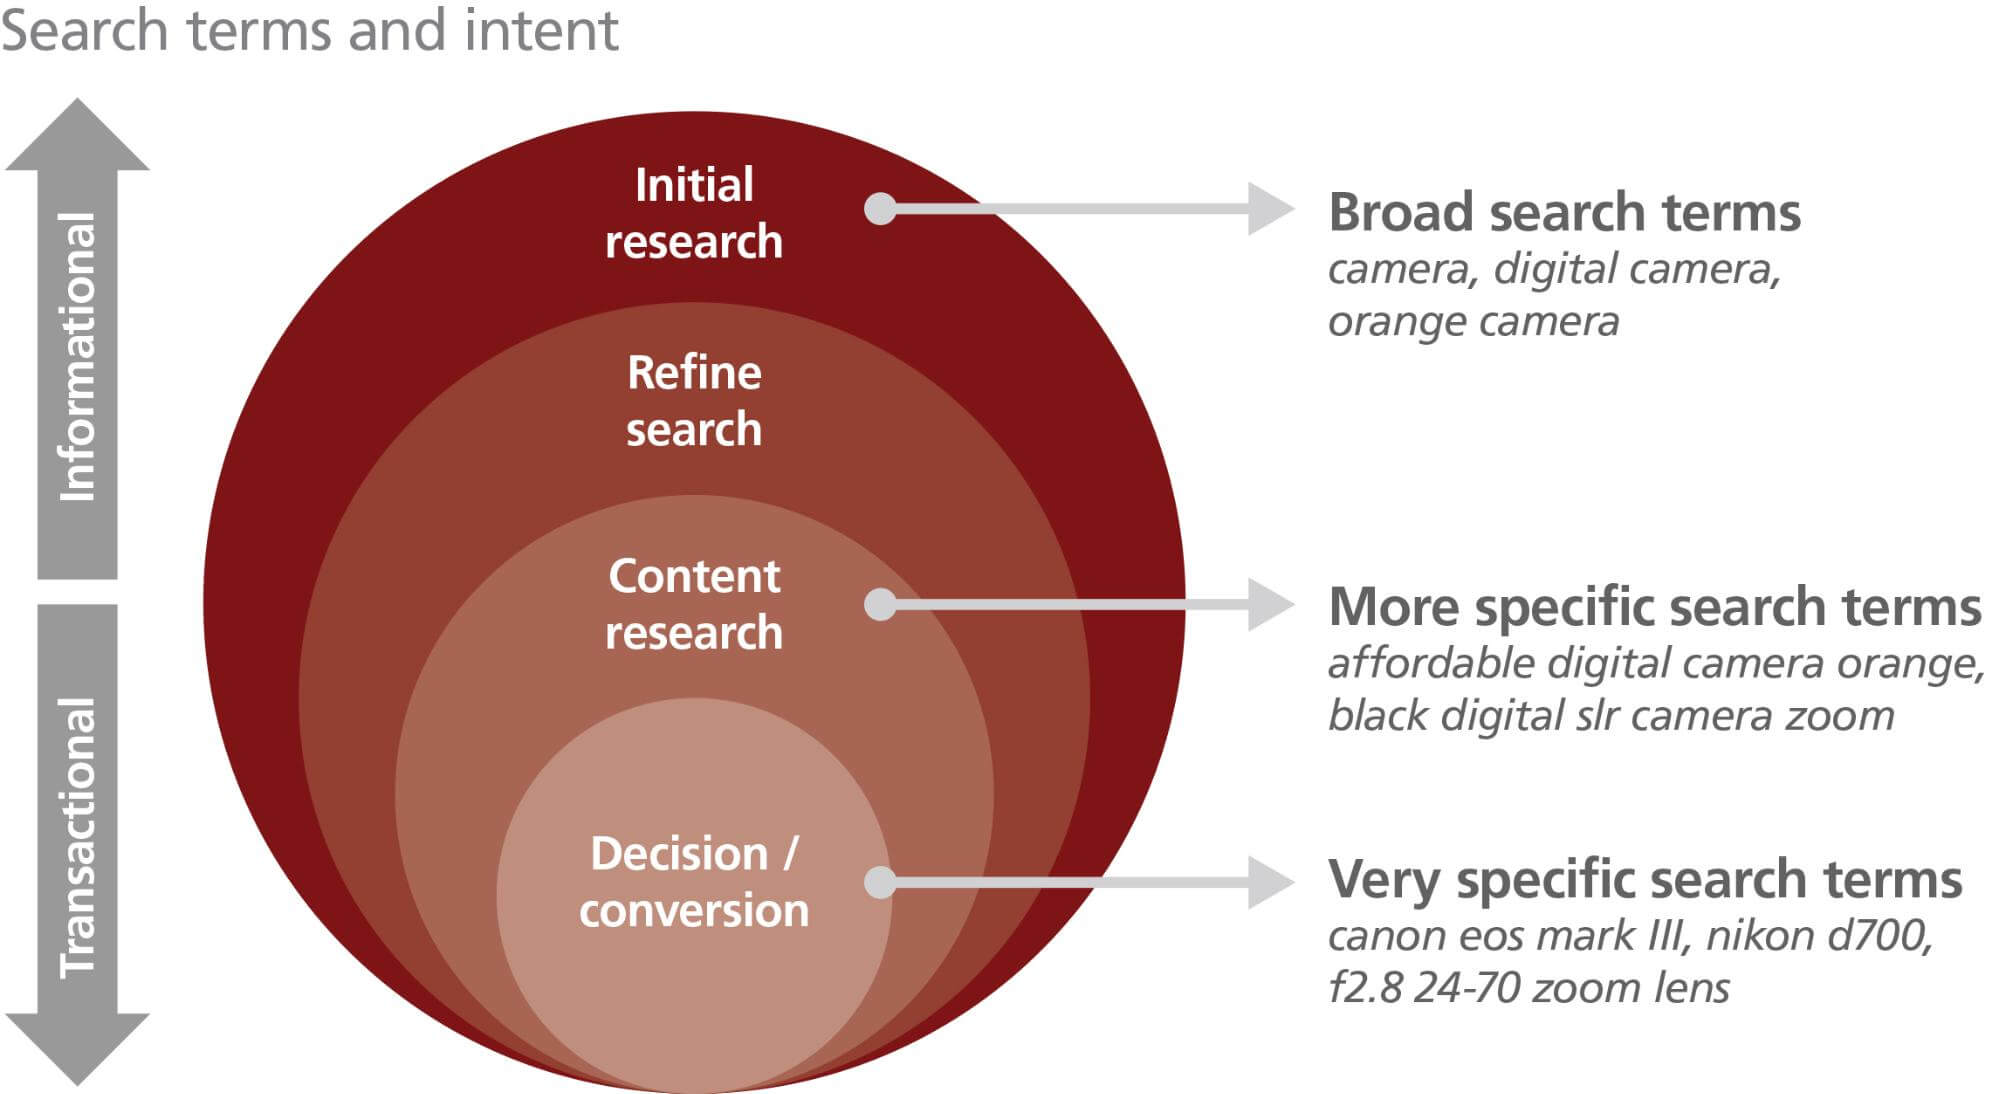 search terms and intent